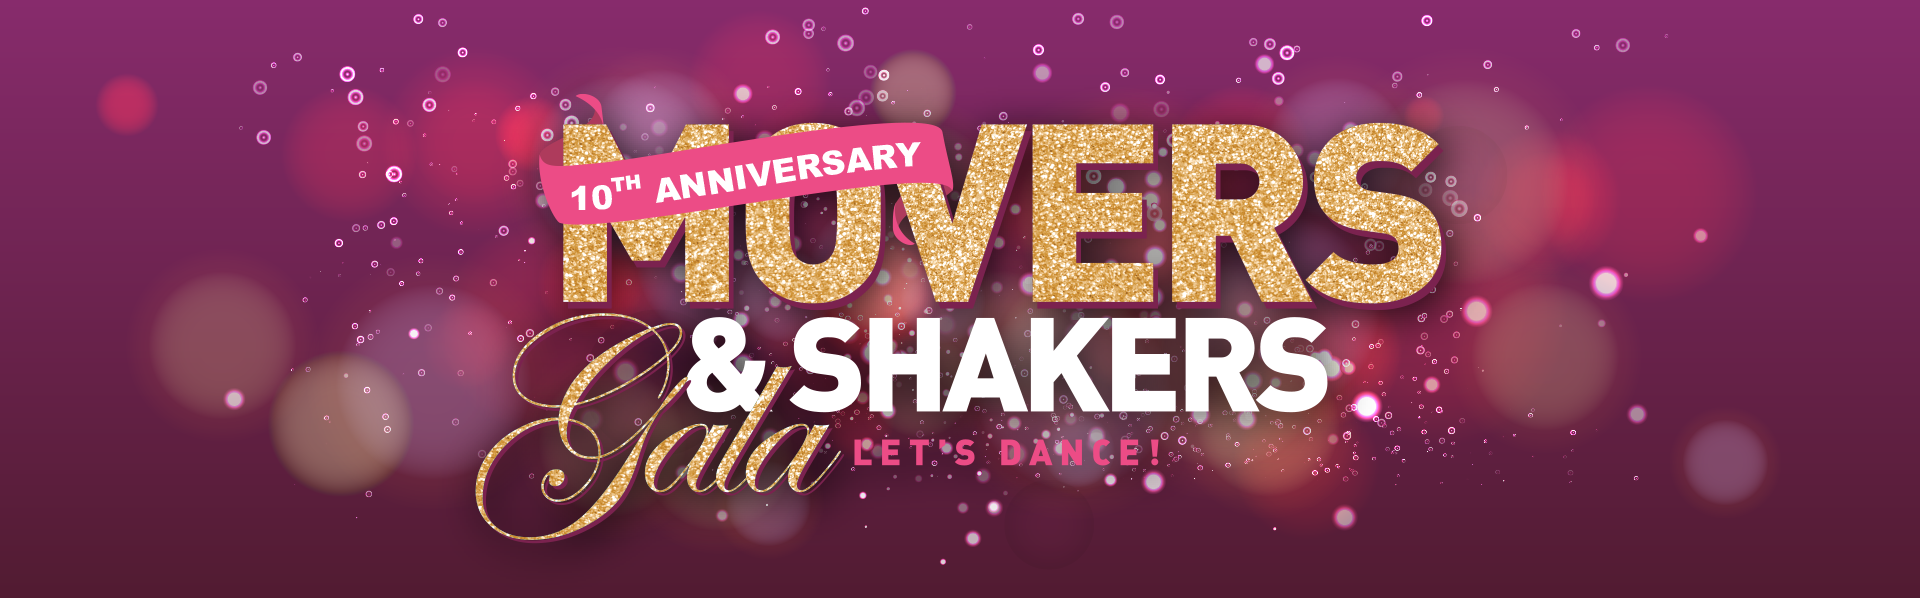 The Movers & Shakers Gala